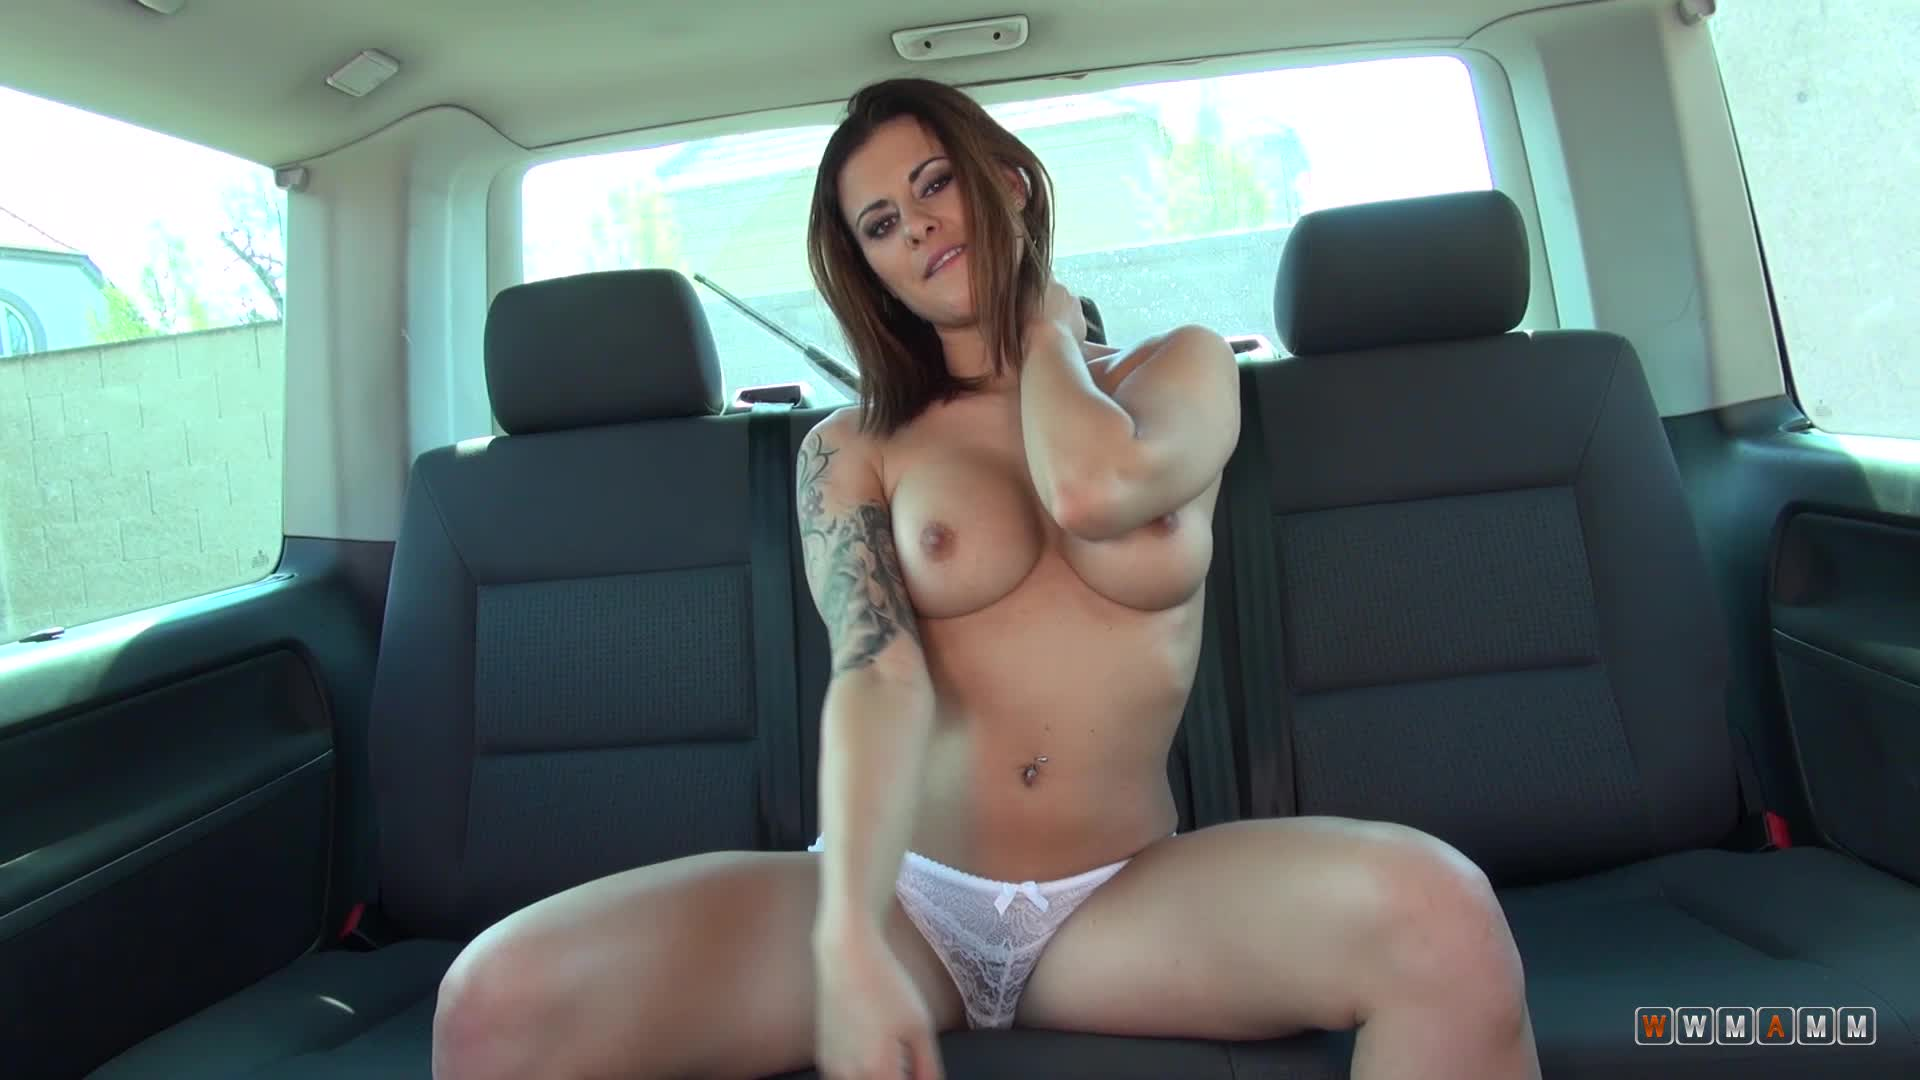 Curvy Milf Billie Star Teases In Back Seat With her Bulbous Booty